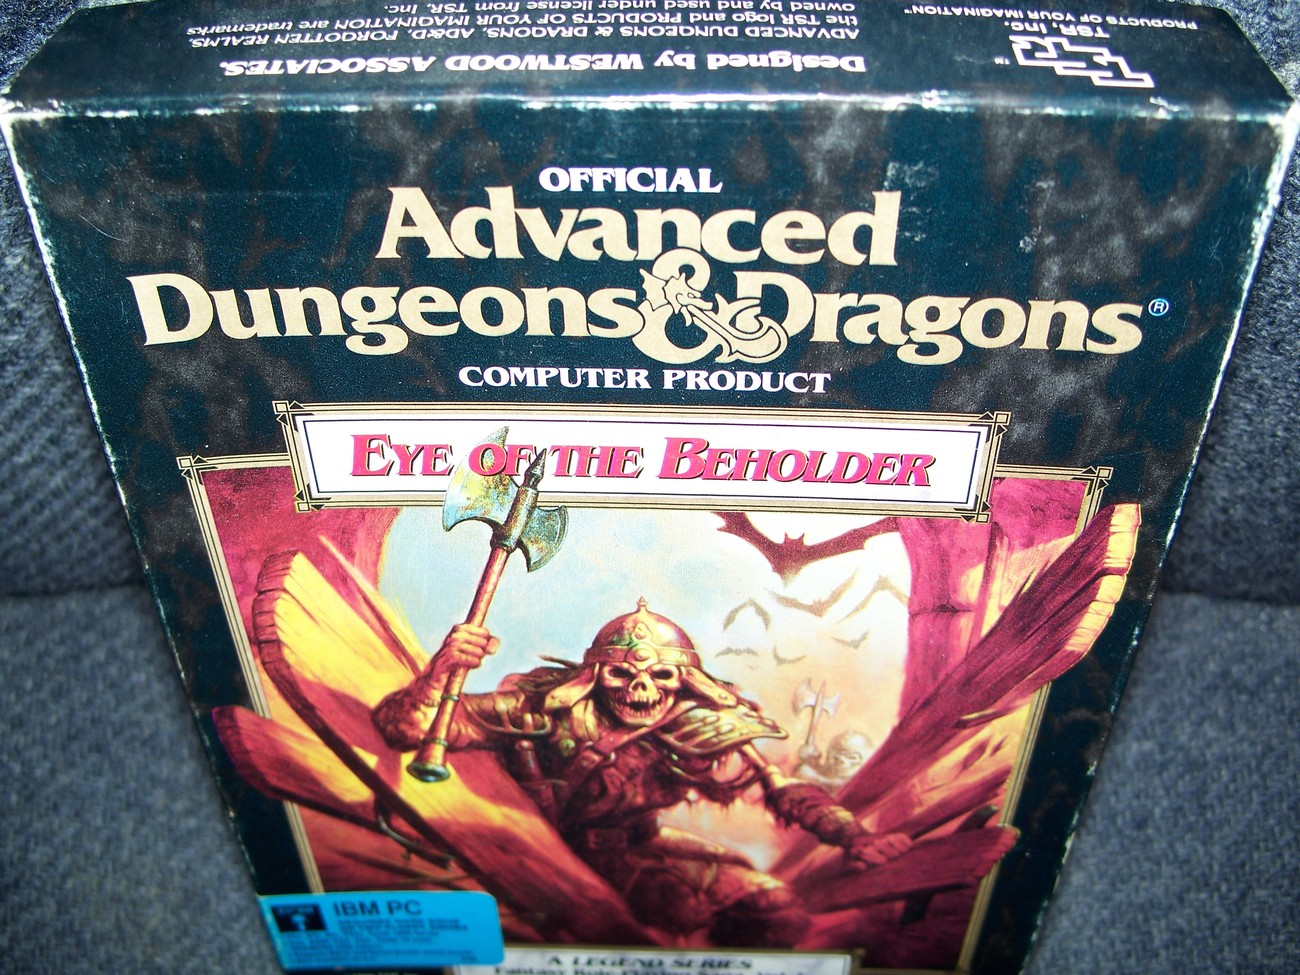 SSI Adv Dungeons & Dragons Eye of the Beholder DOS PC 5.25